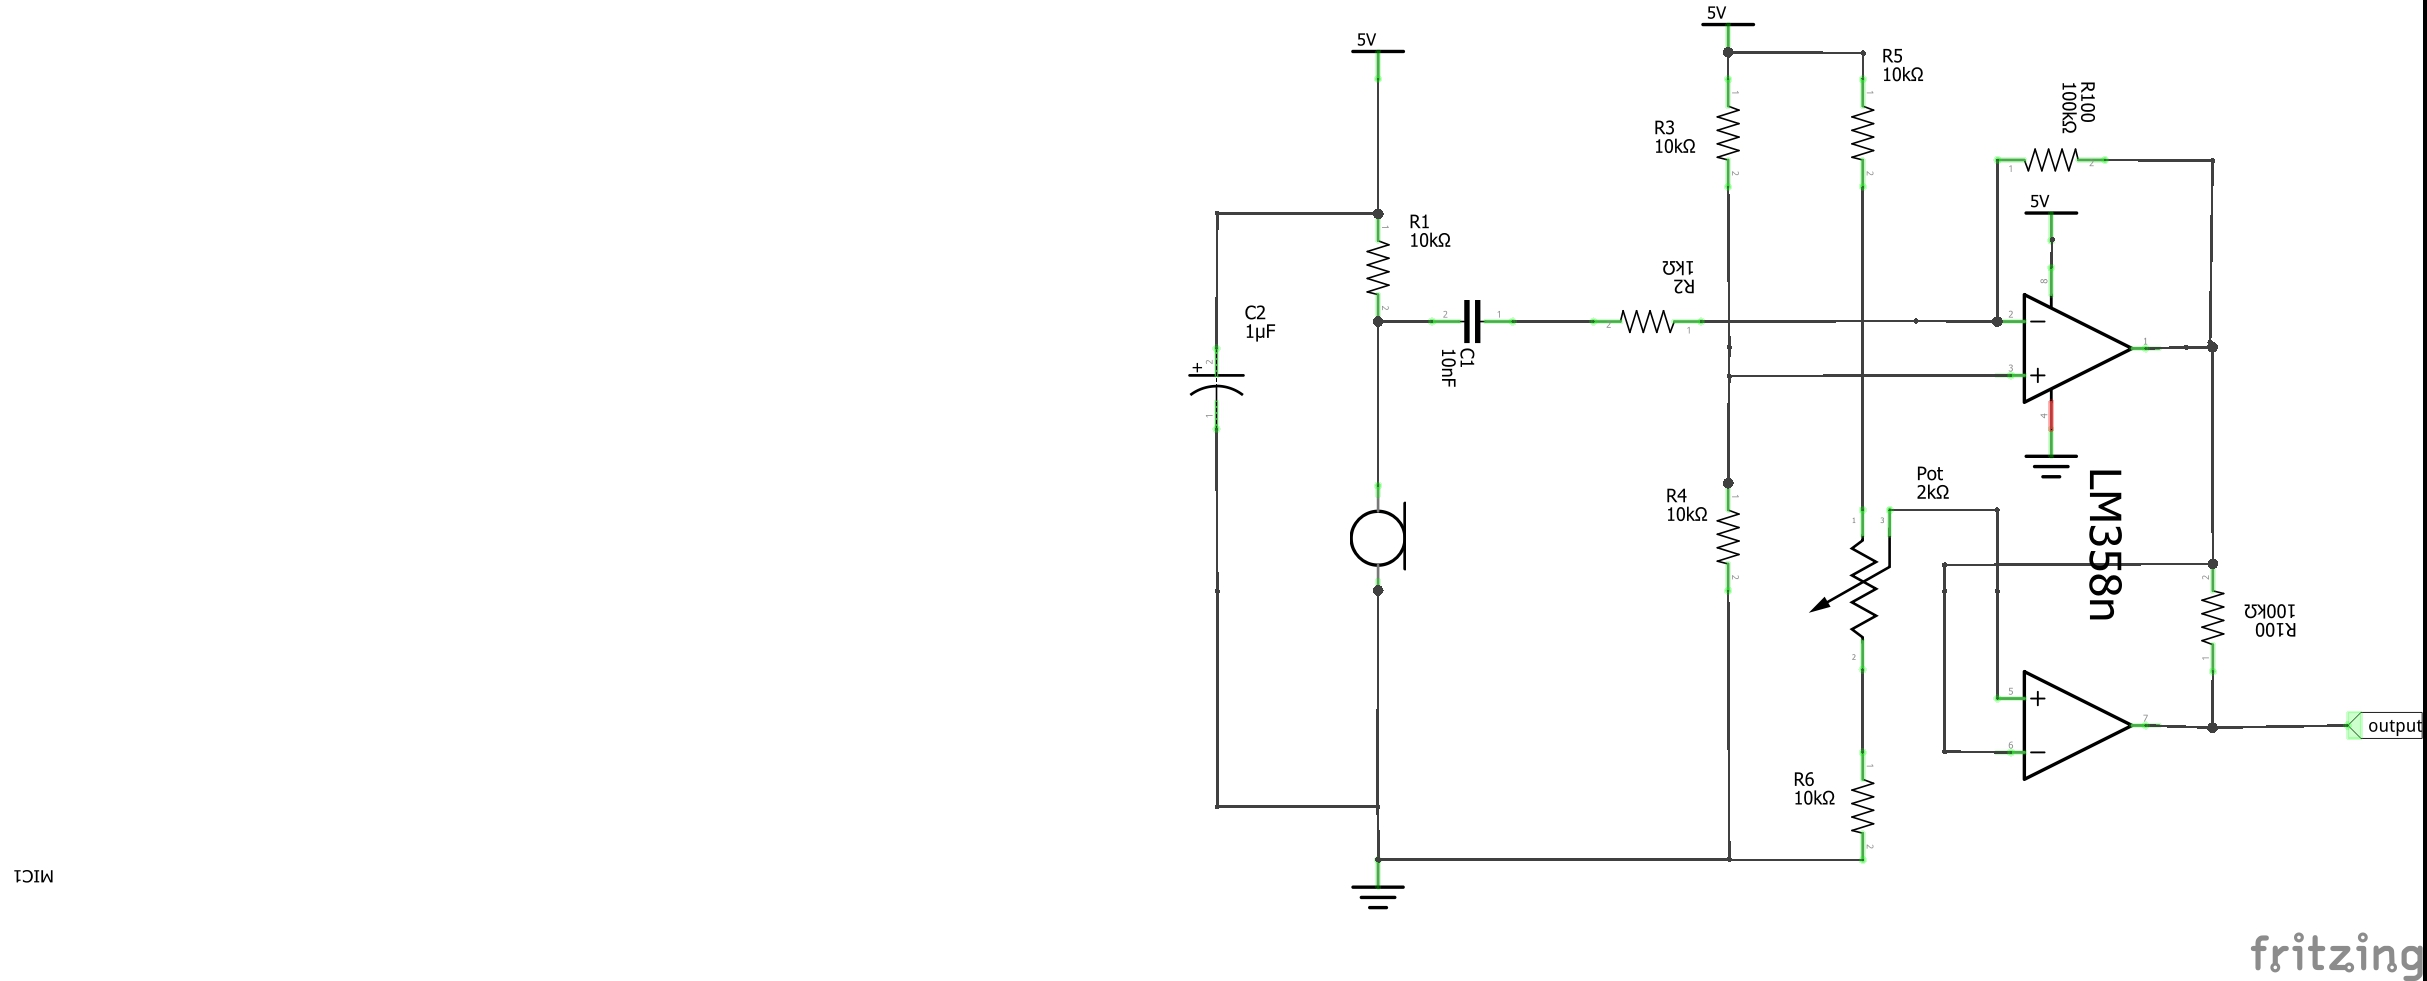 A Simple Arduino Based Leds Dance To Audio Input How Build Dancing Circuit Diagram Xer65nmgkwdbkw06i3il